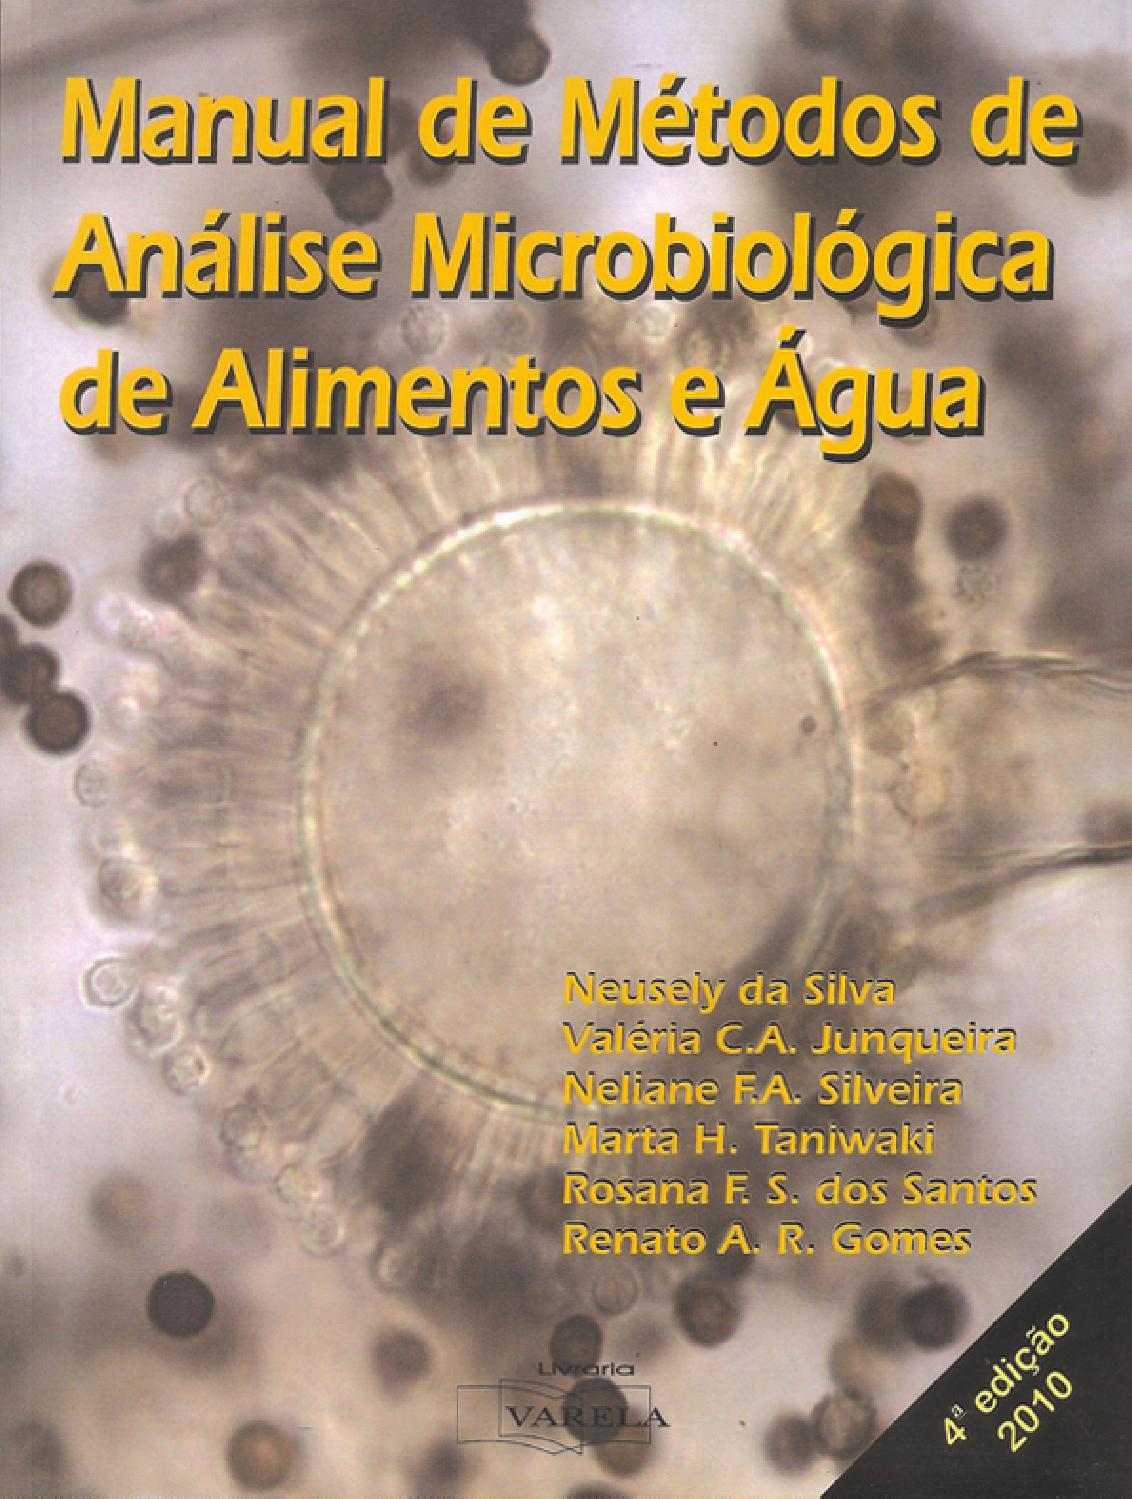 Manual de m todos de an lise microbiol gica de alimentos e for Manual de acuicultura pdf